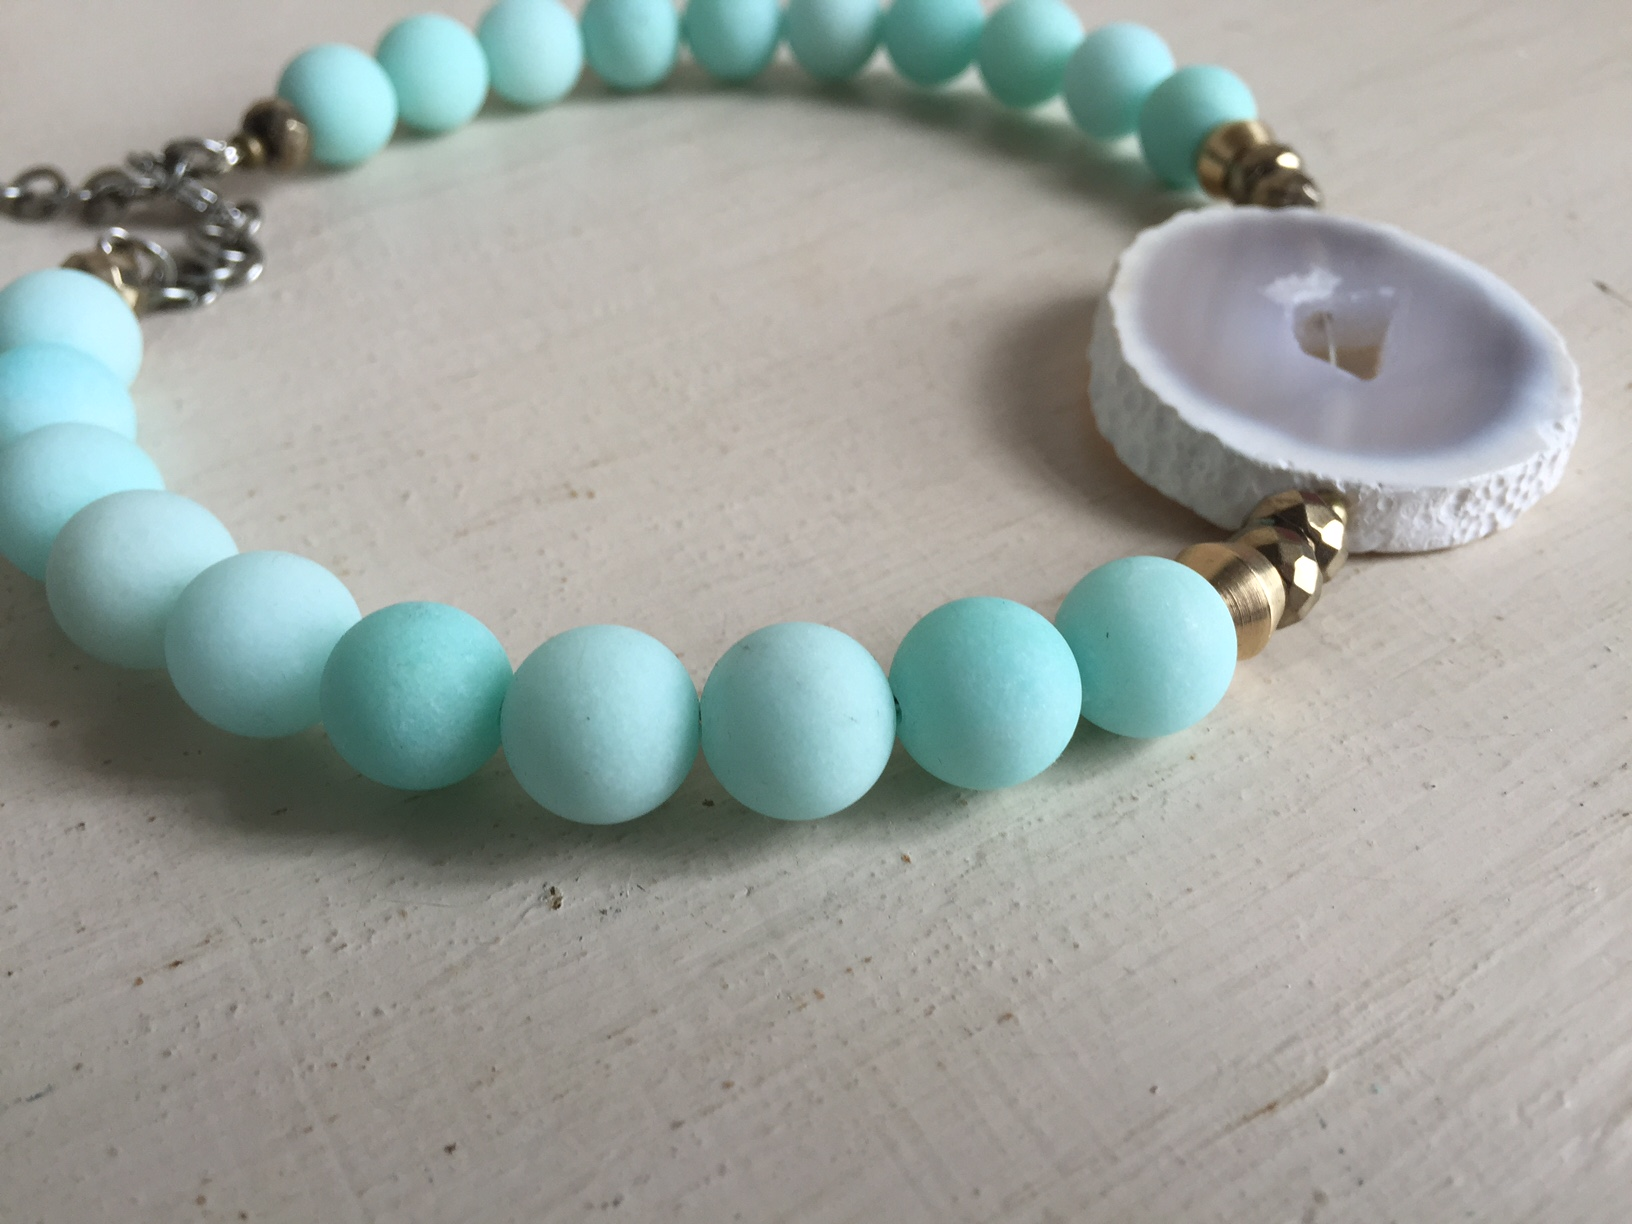 We are soooo in love with the beads on this choker! That color just screams spring!